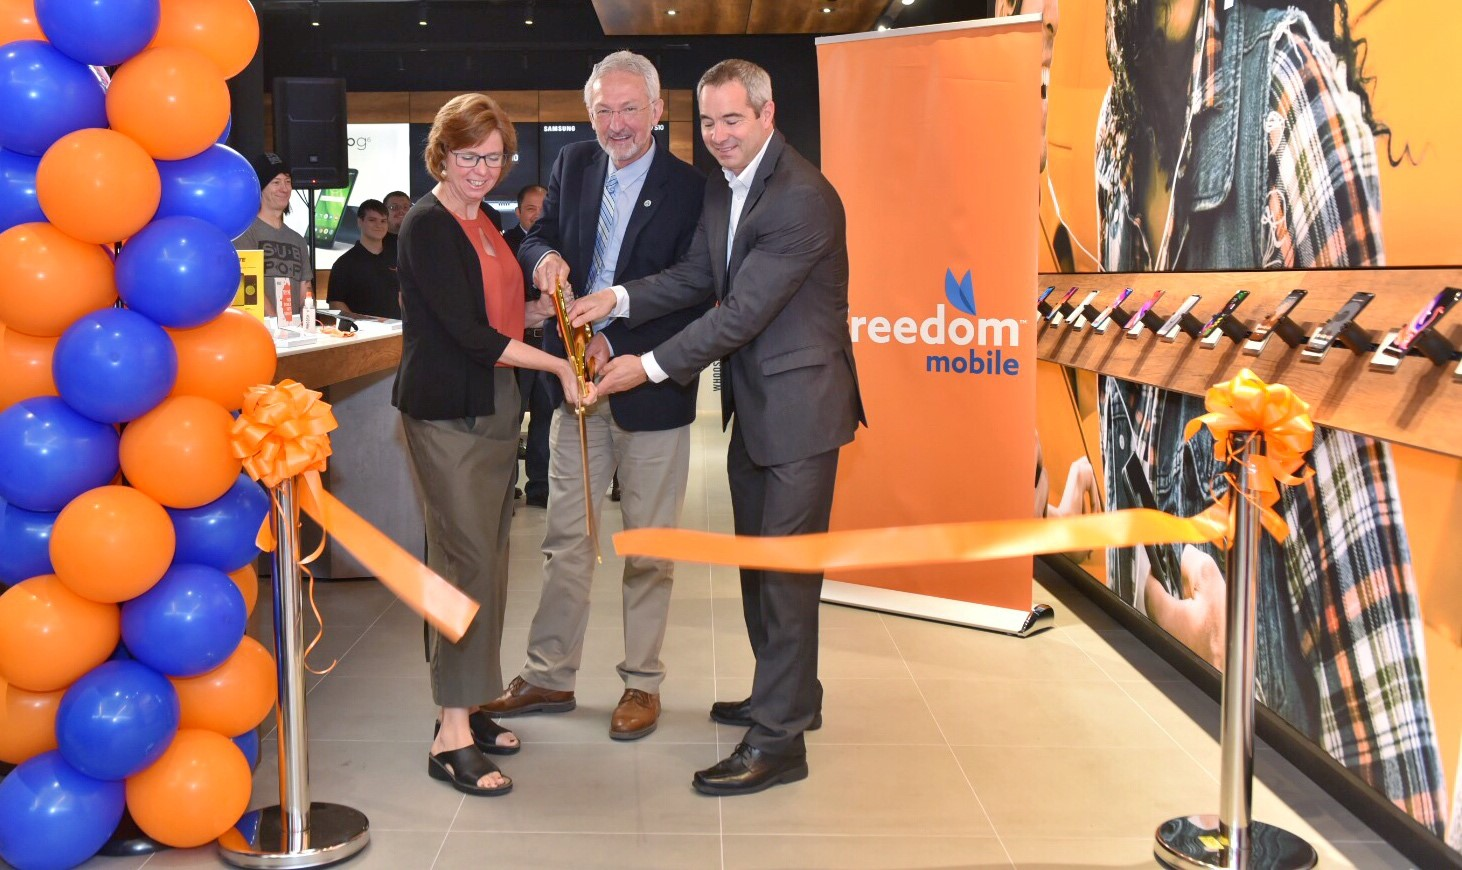 Freedom-Mobile-Nanaimo-Launch-2